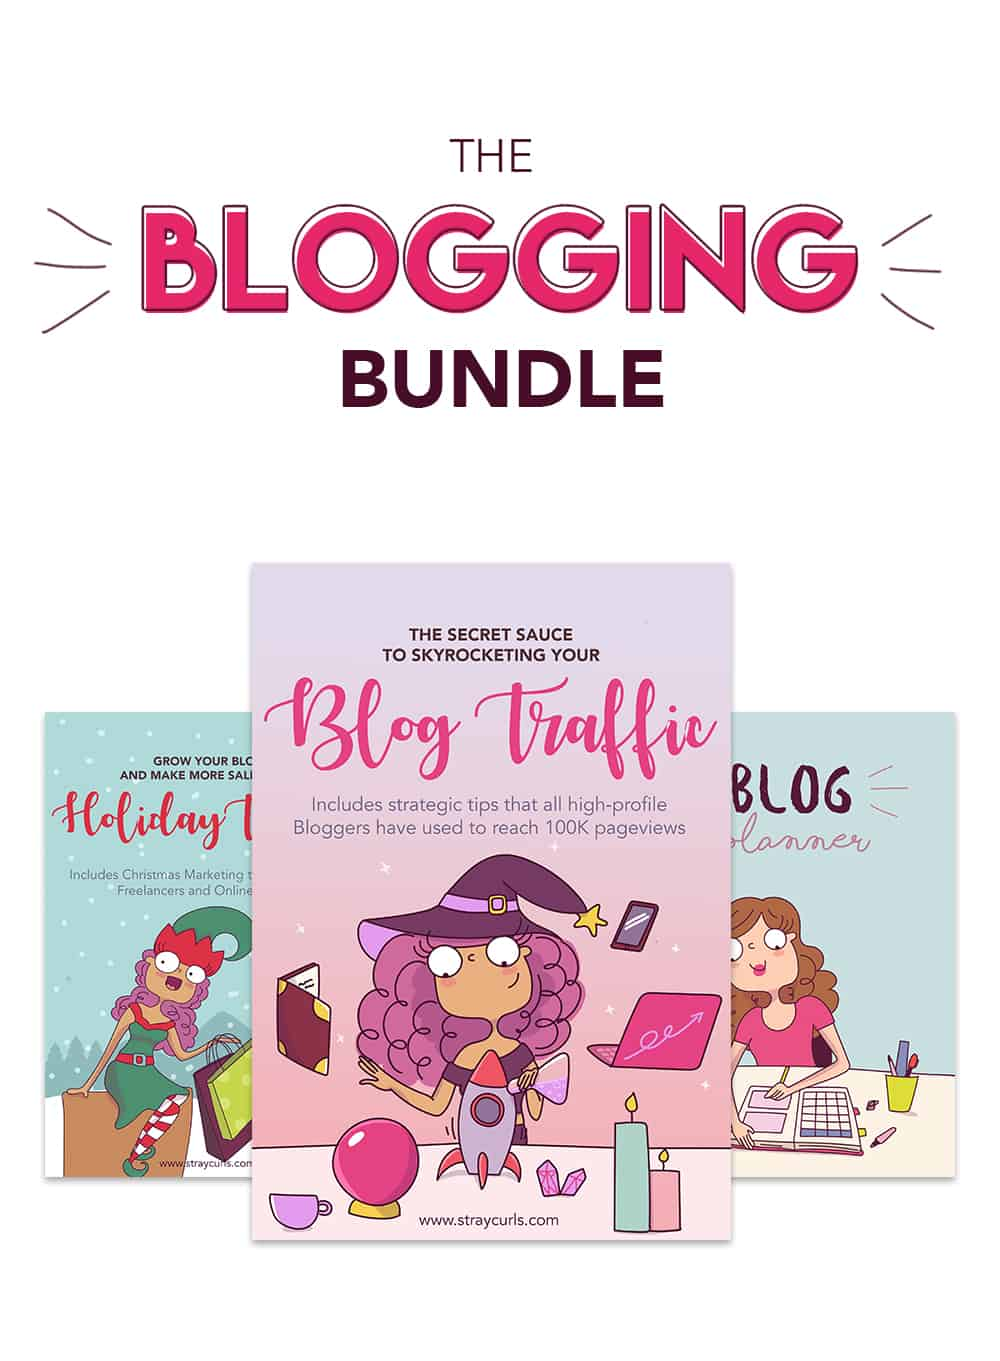 The Ultimate Resource for every Online Business - The Stray Curls Blogging Bundle.